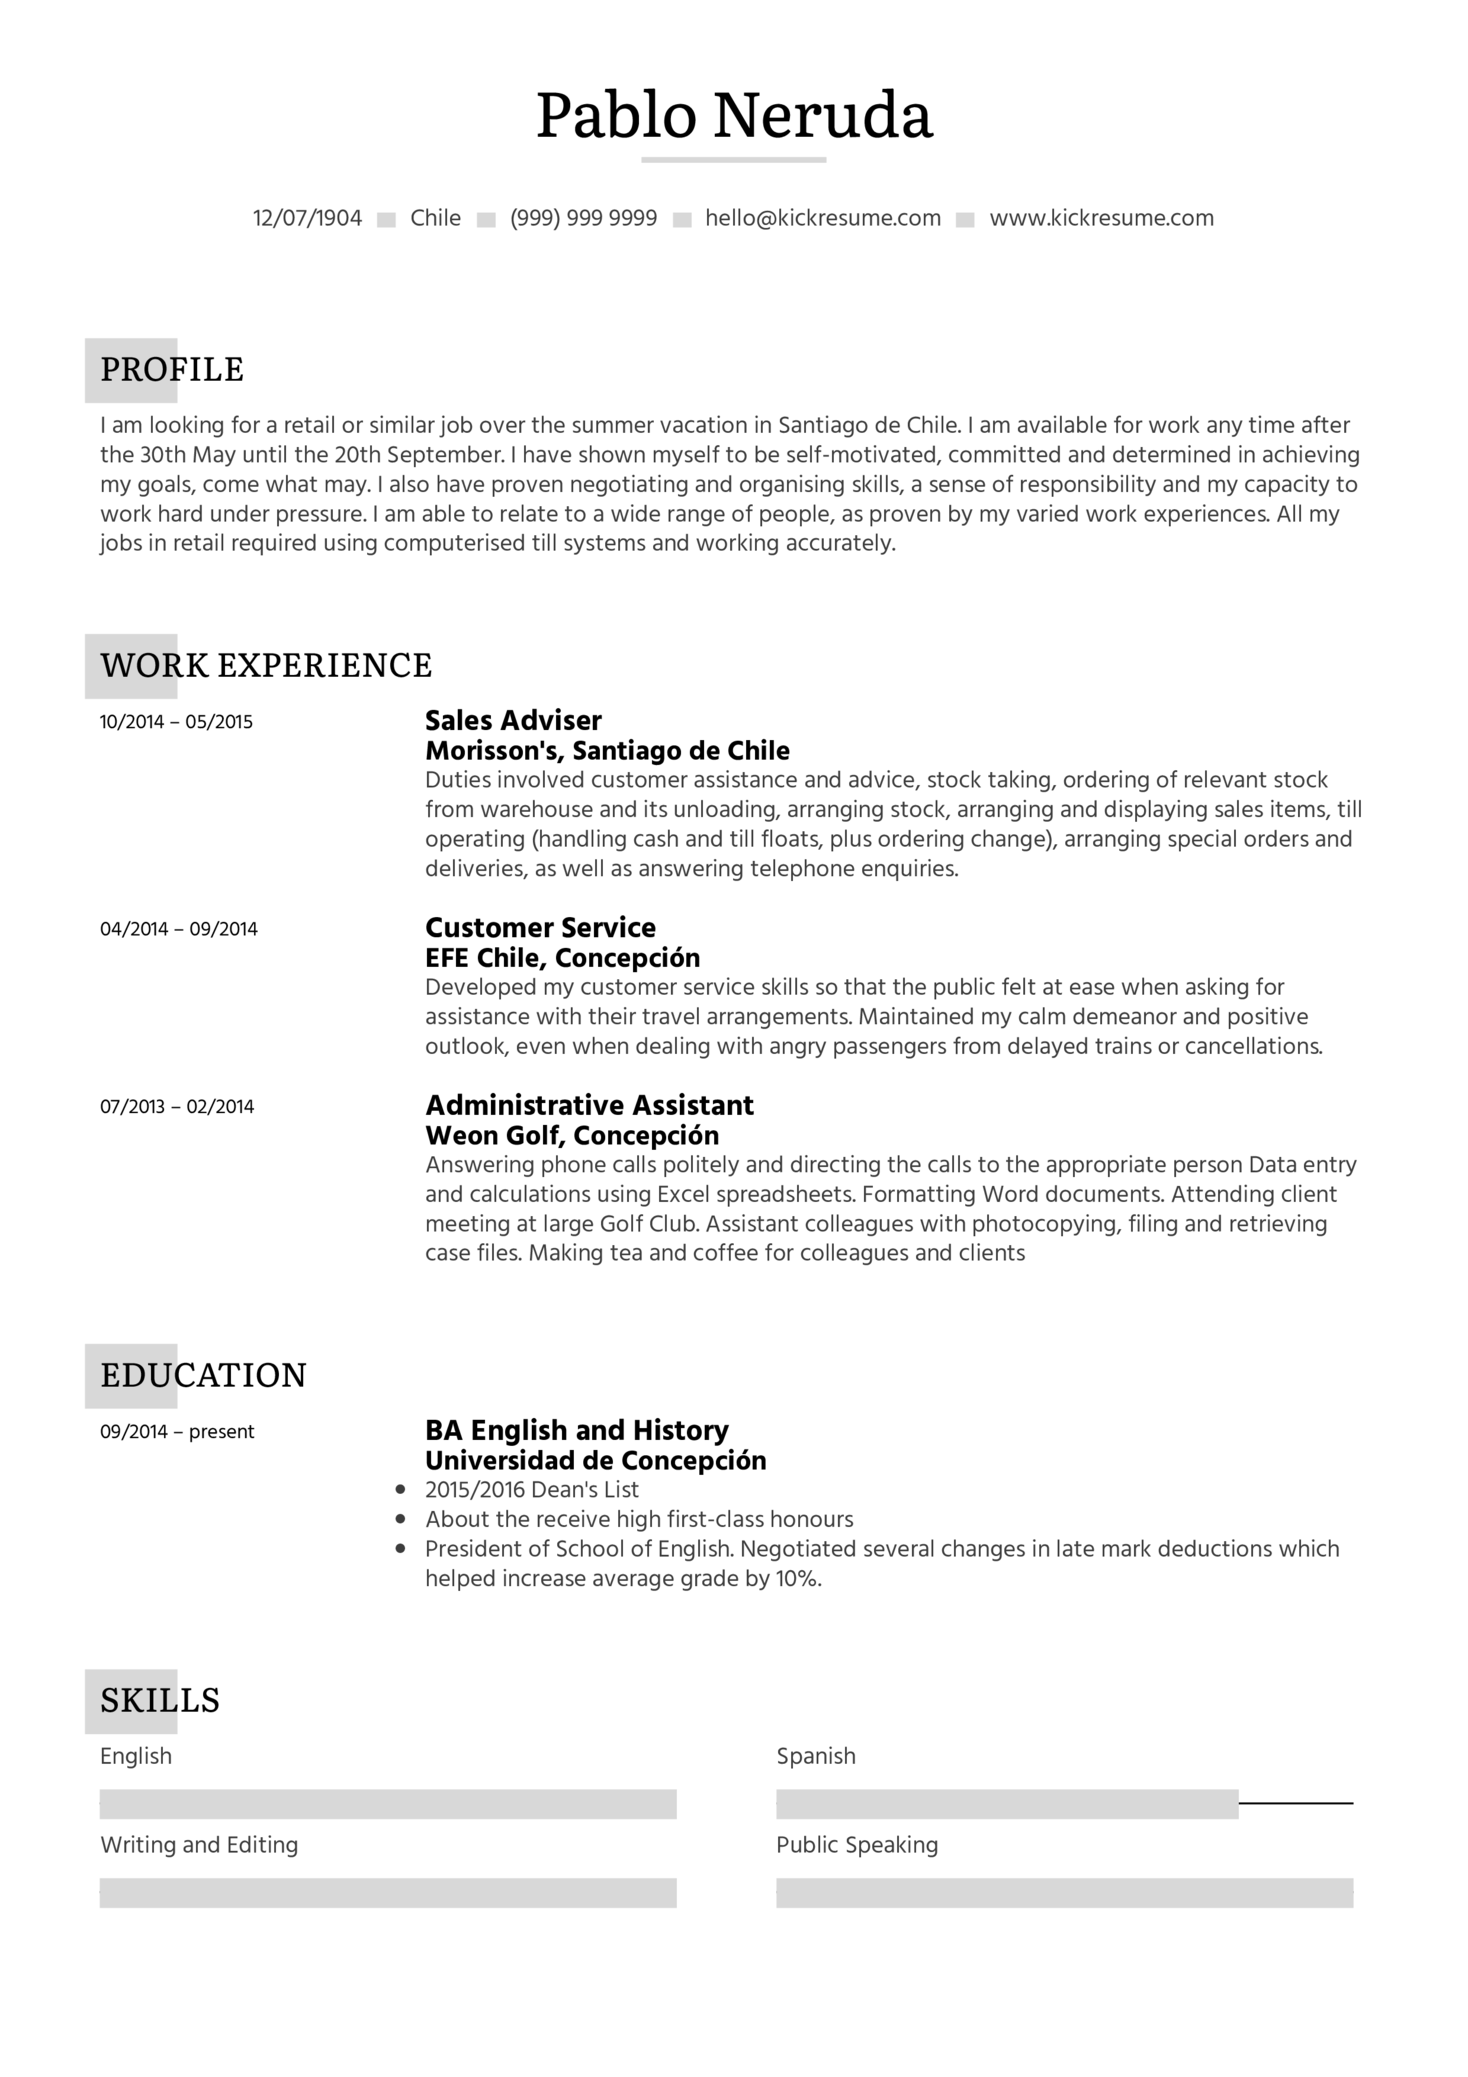 Resume Examples By Real People: Student Resume Summer Job